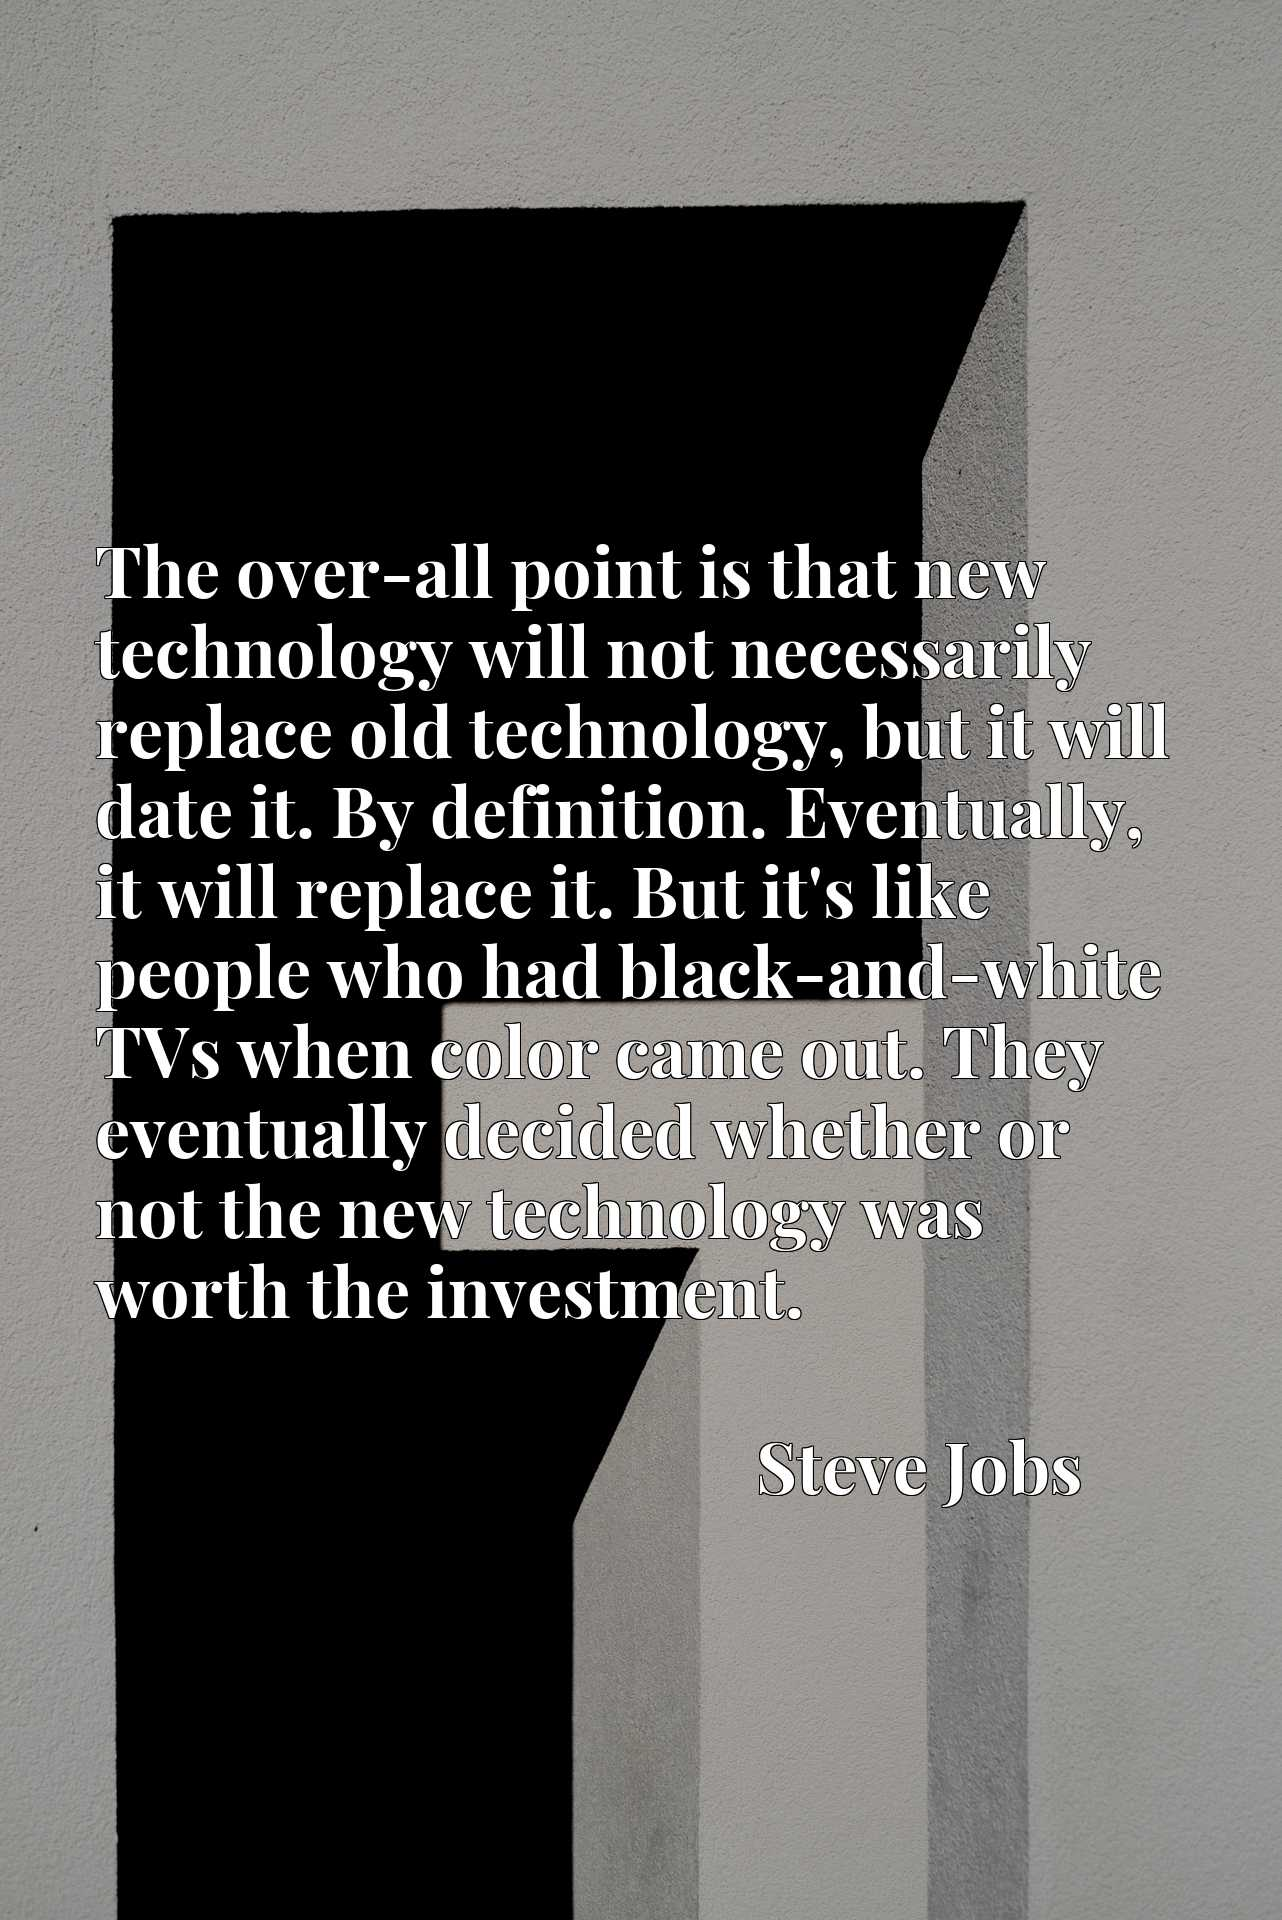 The over-all point is that new technology will not necessarily replace old technology, but it will date it. By definition. Eventually, it will replace it. But it's like people who had black-and-white TVs when color came out. They eventually decided whether or not the new technology was worth the investment.